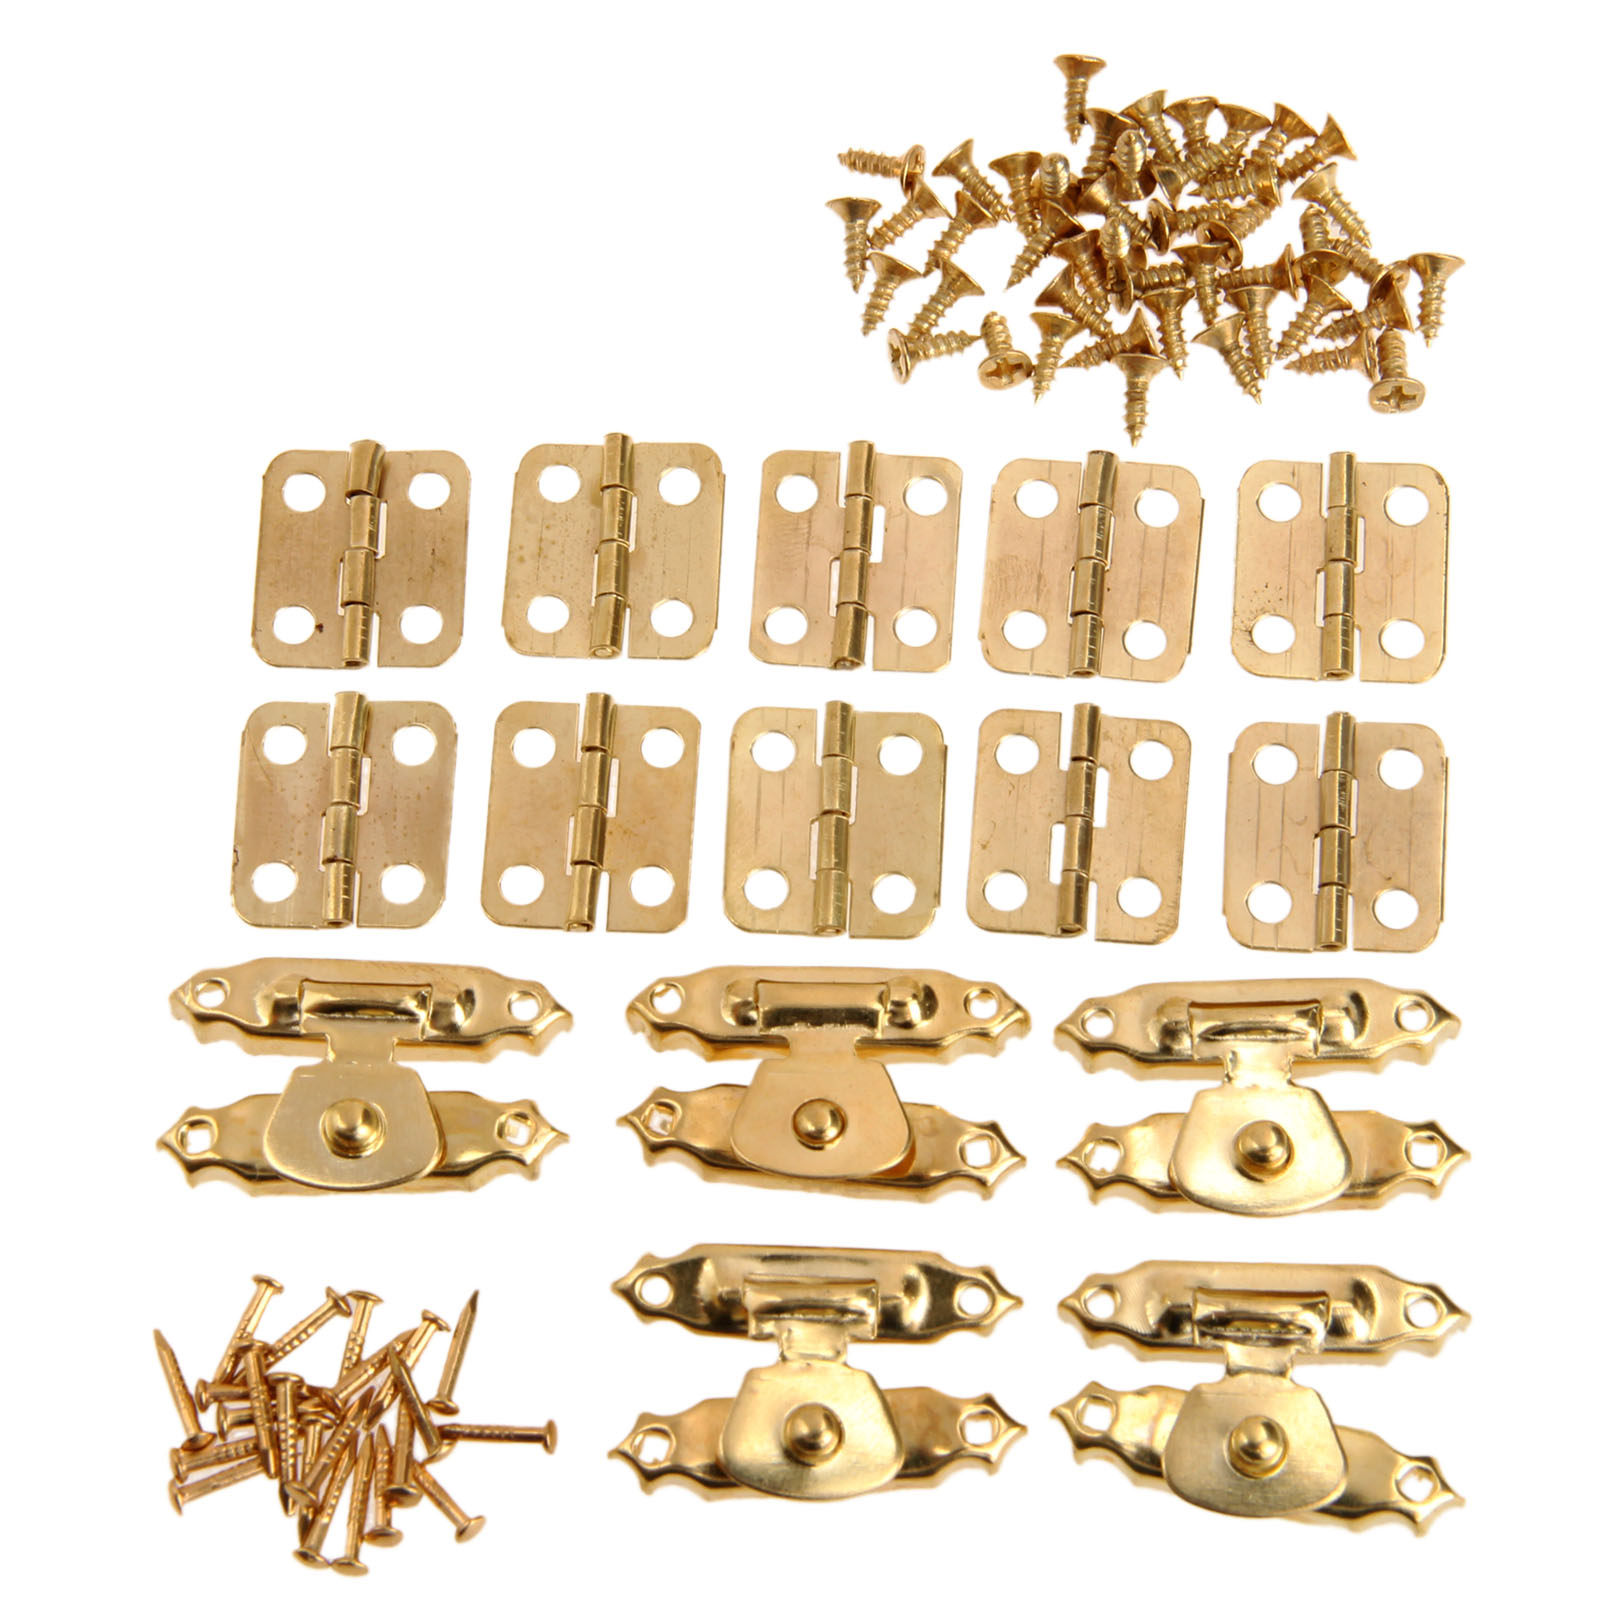 5Pcs Antique Gold Jewelry Wooden Box Case Toggle Hasp Latch +10Pcs Cabinet Hinges  Iron Vintage Hardware Furniture Accessories5Pcs Antique Gold Jewelry Wooden Box Case Toggle Hasp Latch +10Pcs Cabinet Hinges  Iron Vintage Hardware Furniture Accessories